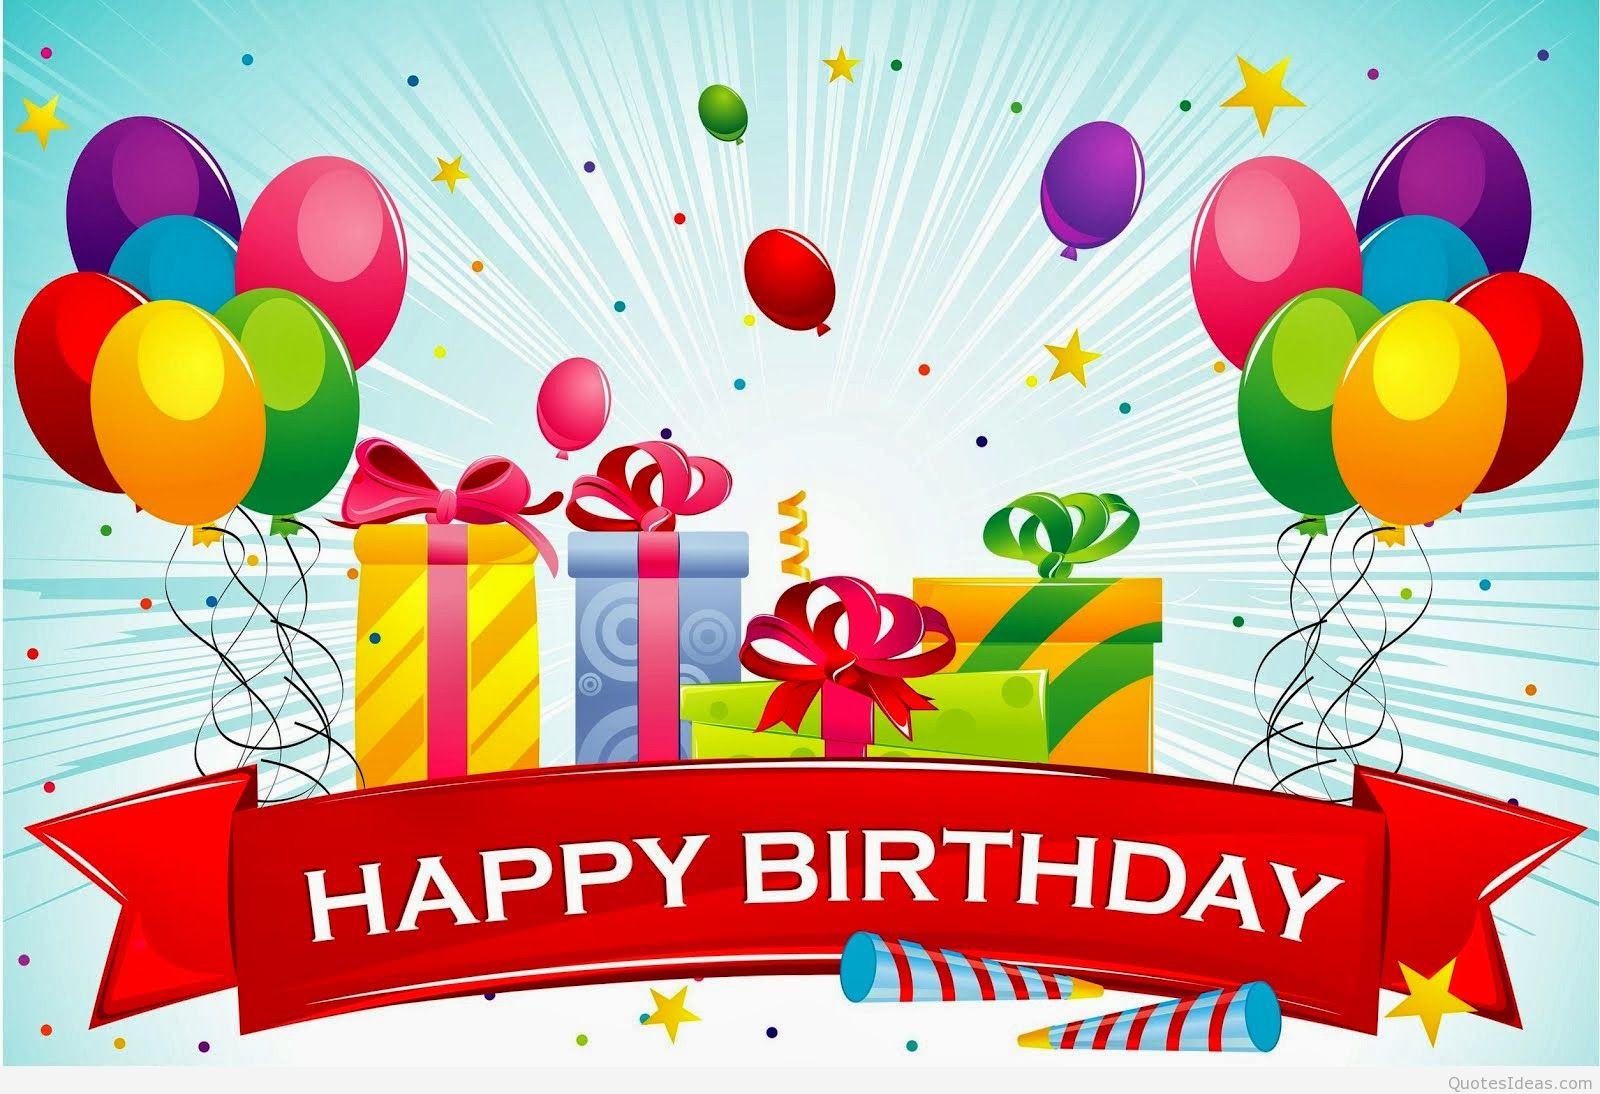 Best ideas about Birthday Wishes Images Free Download . Save or Pin Happy birthday quotes images happy birthday wallpapers Now.